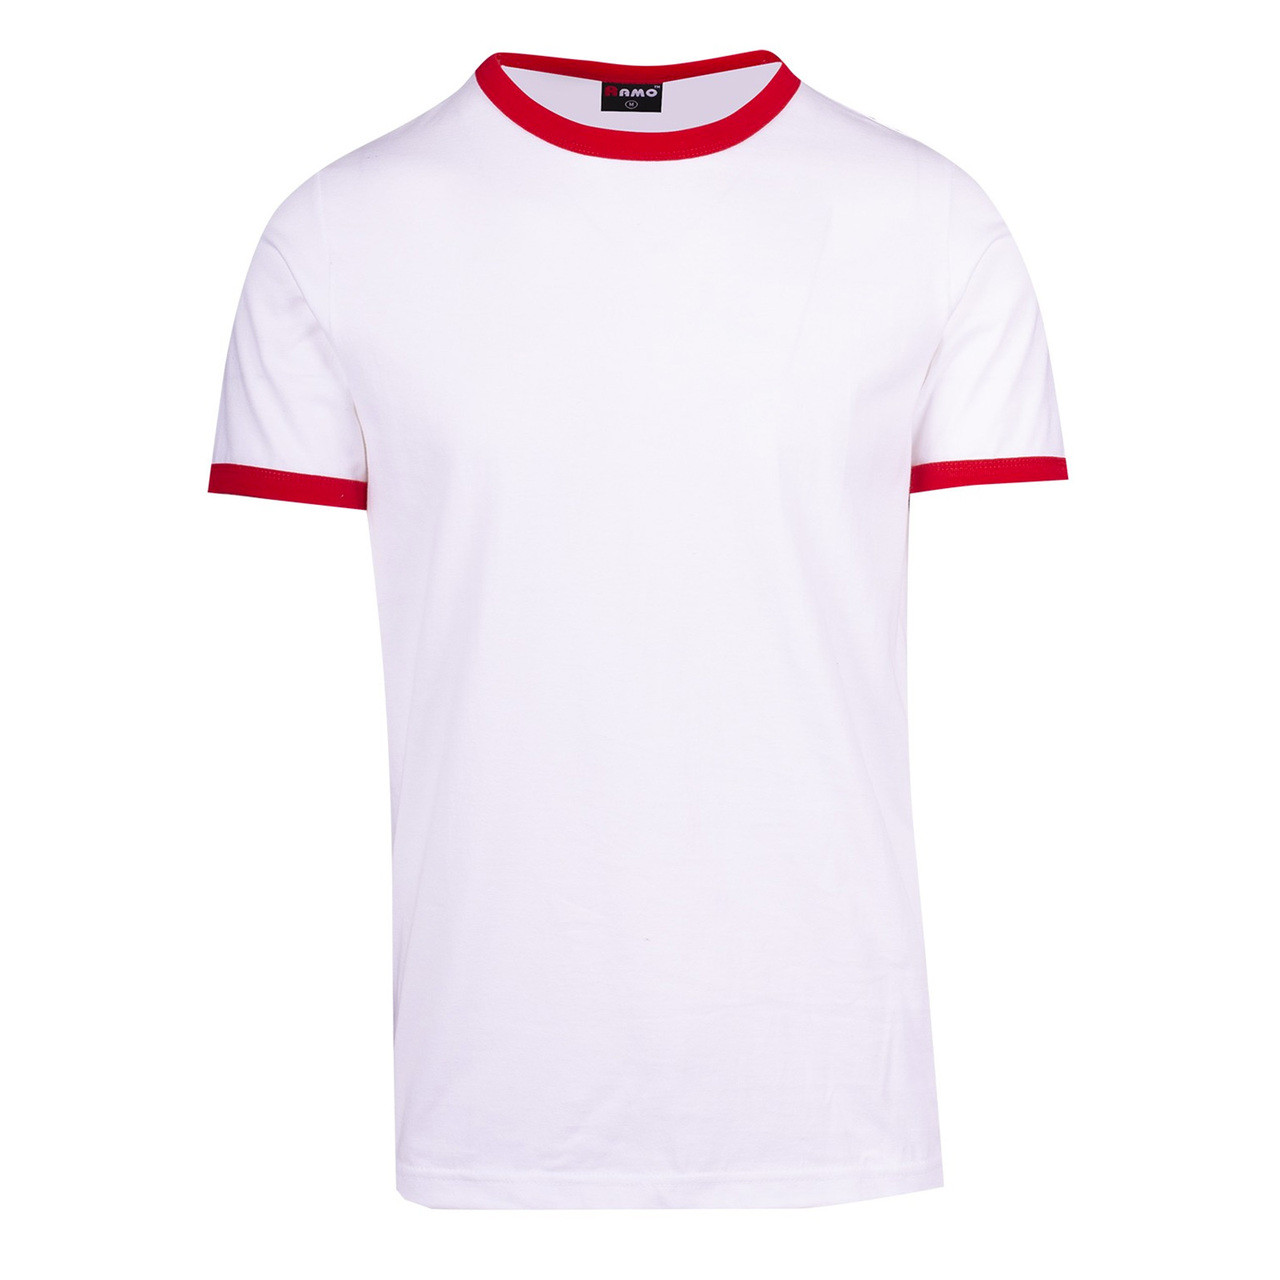 details for most fashionable clearance sale MAX | T-Shirts Slim Fit Retro Ringer-Style